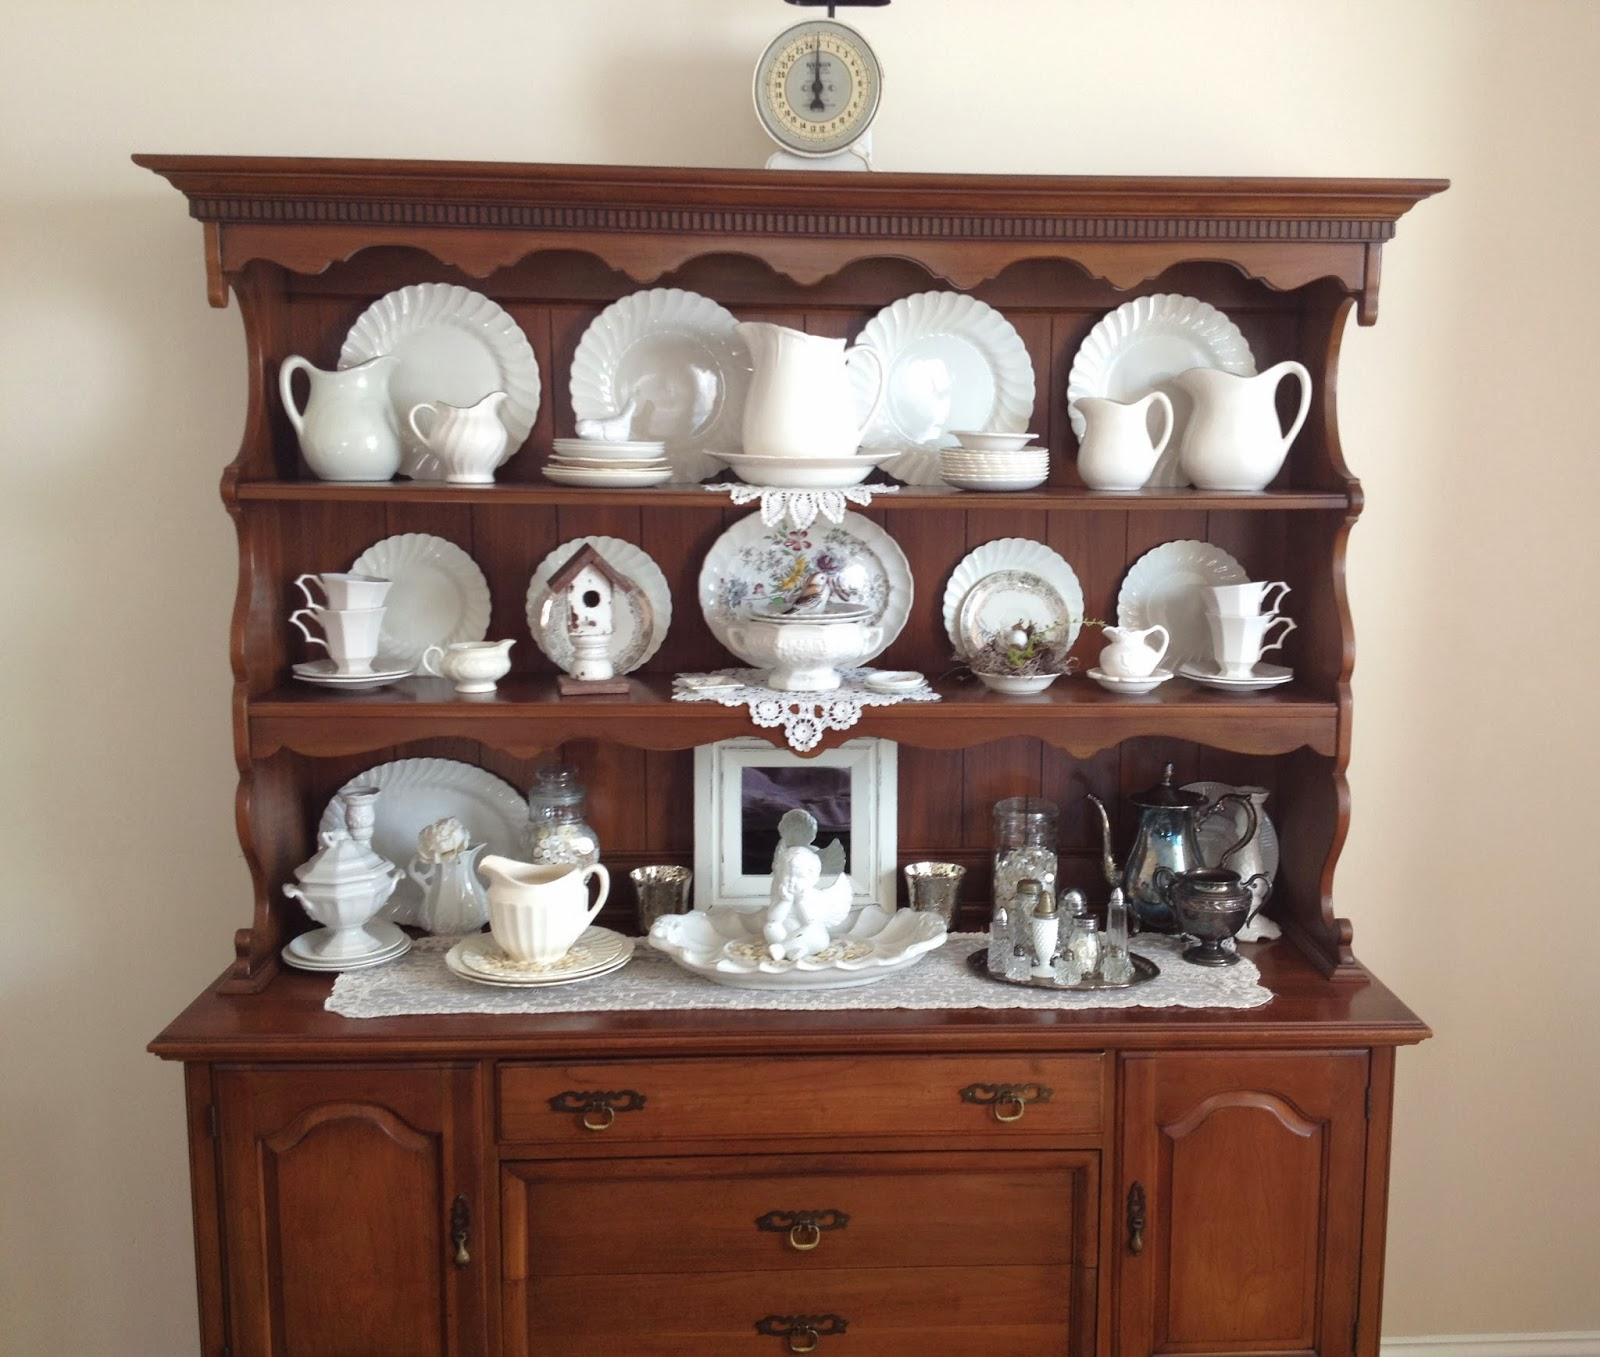 Tattered Treasures My Craigs List China Hutch